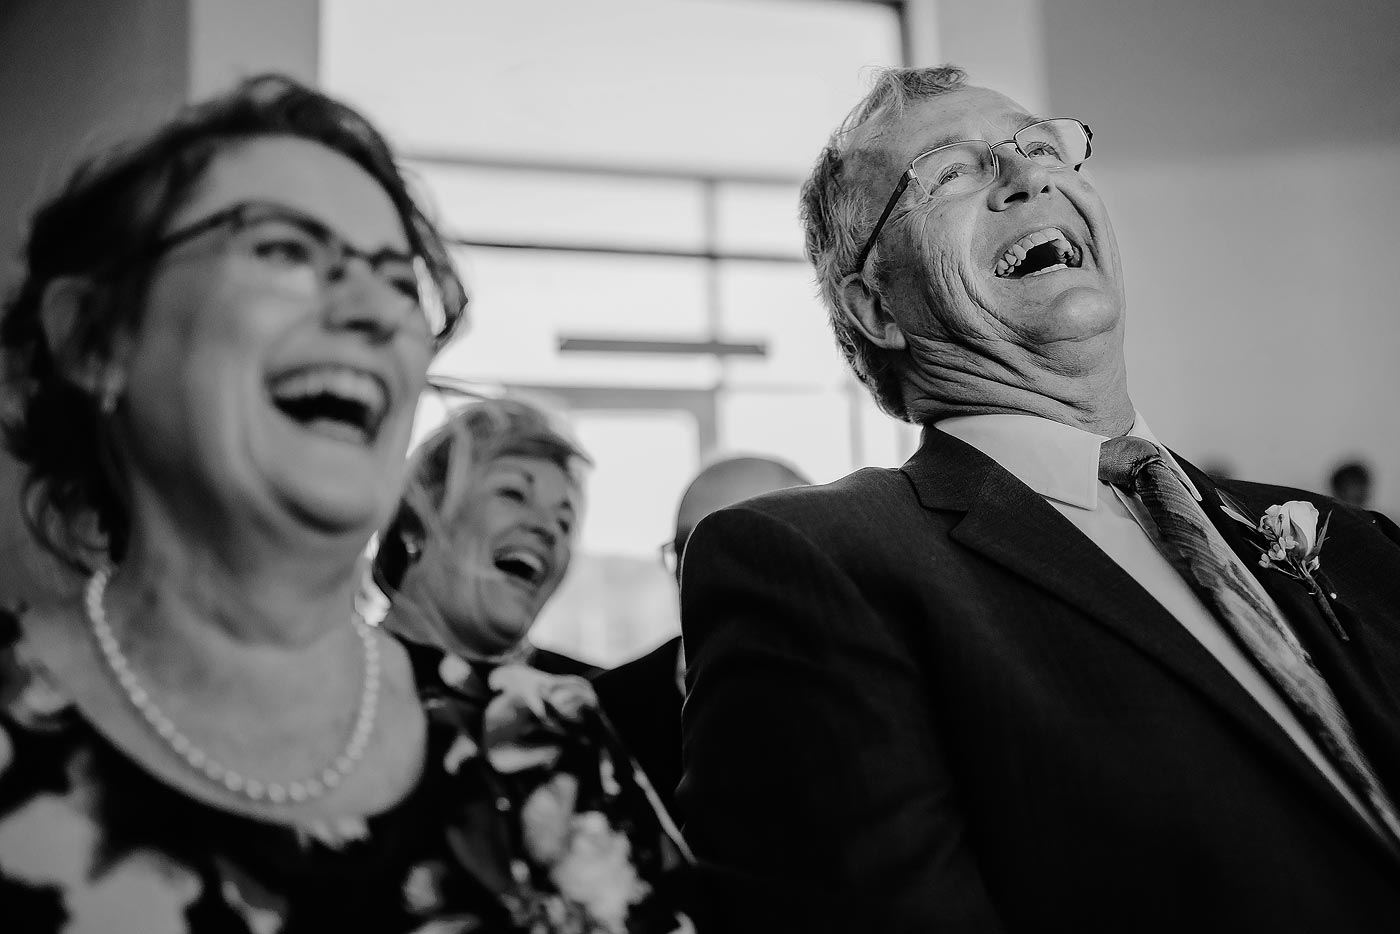 Copy of Parents of the Groom laughing at wedding ceremony in South Africa.